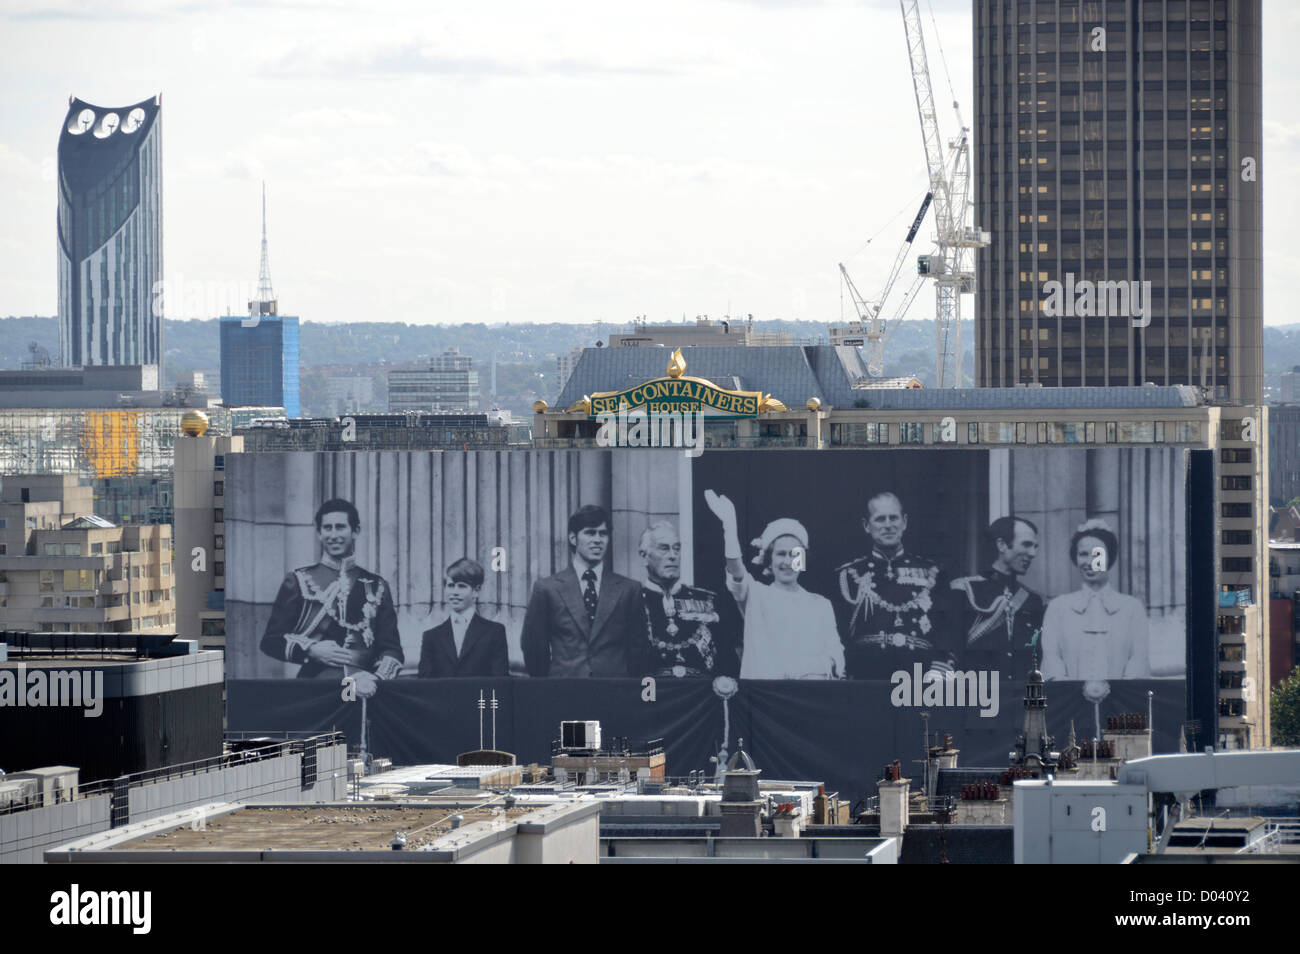 Sea Containers House adorned with black and white photograph of the British Royal Family - Stock Image